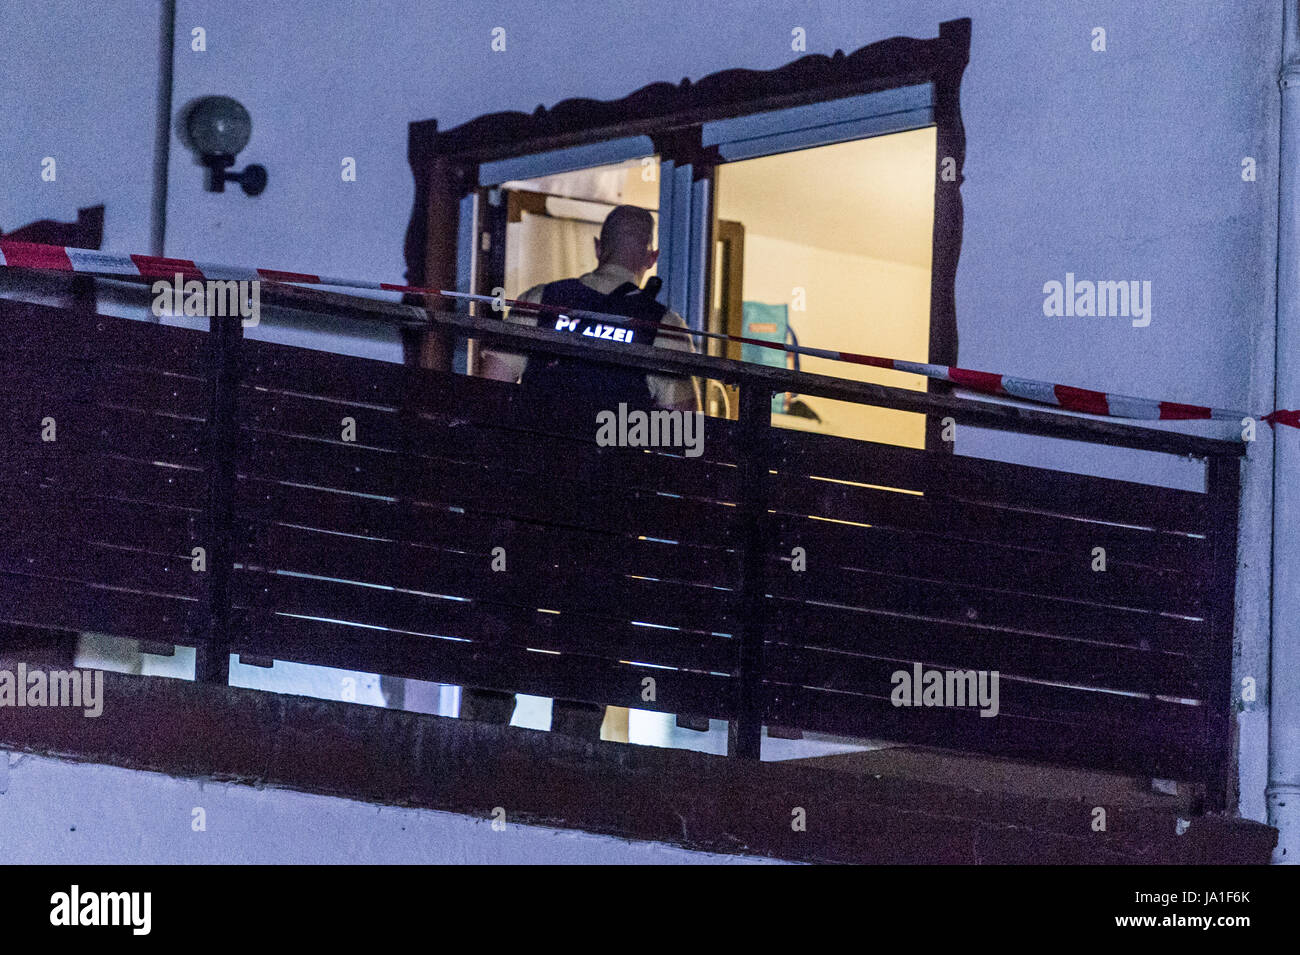 Arnschwang, Germany. 3rd June, 2017. Police officers stand on the premises of an asylum home near Arnschwang, Germany, - Stock Image